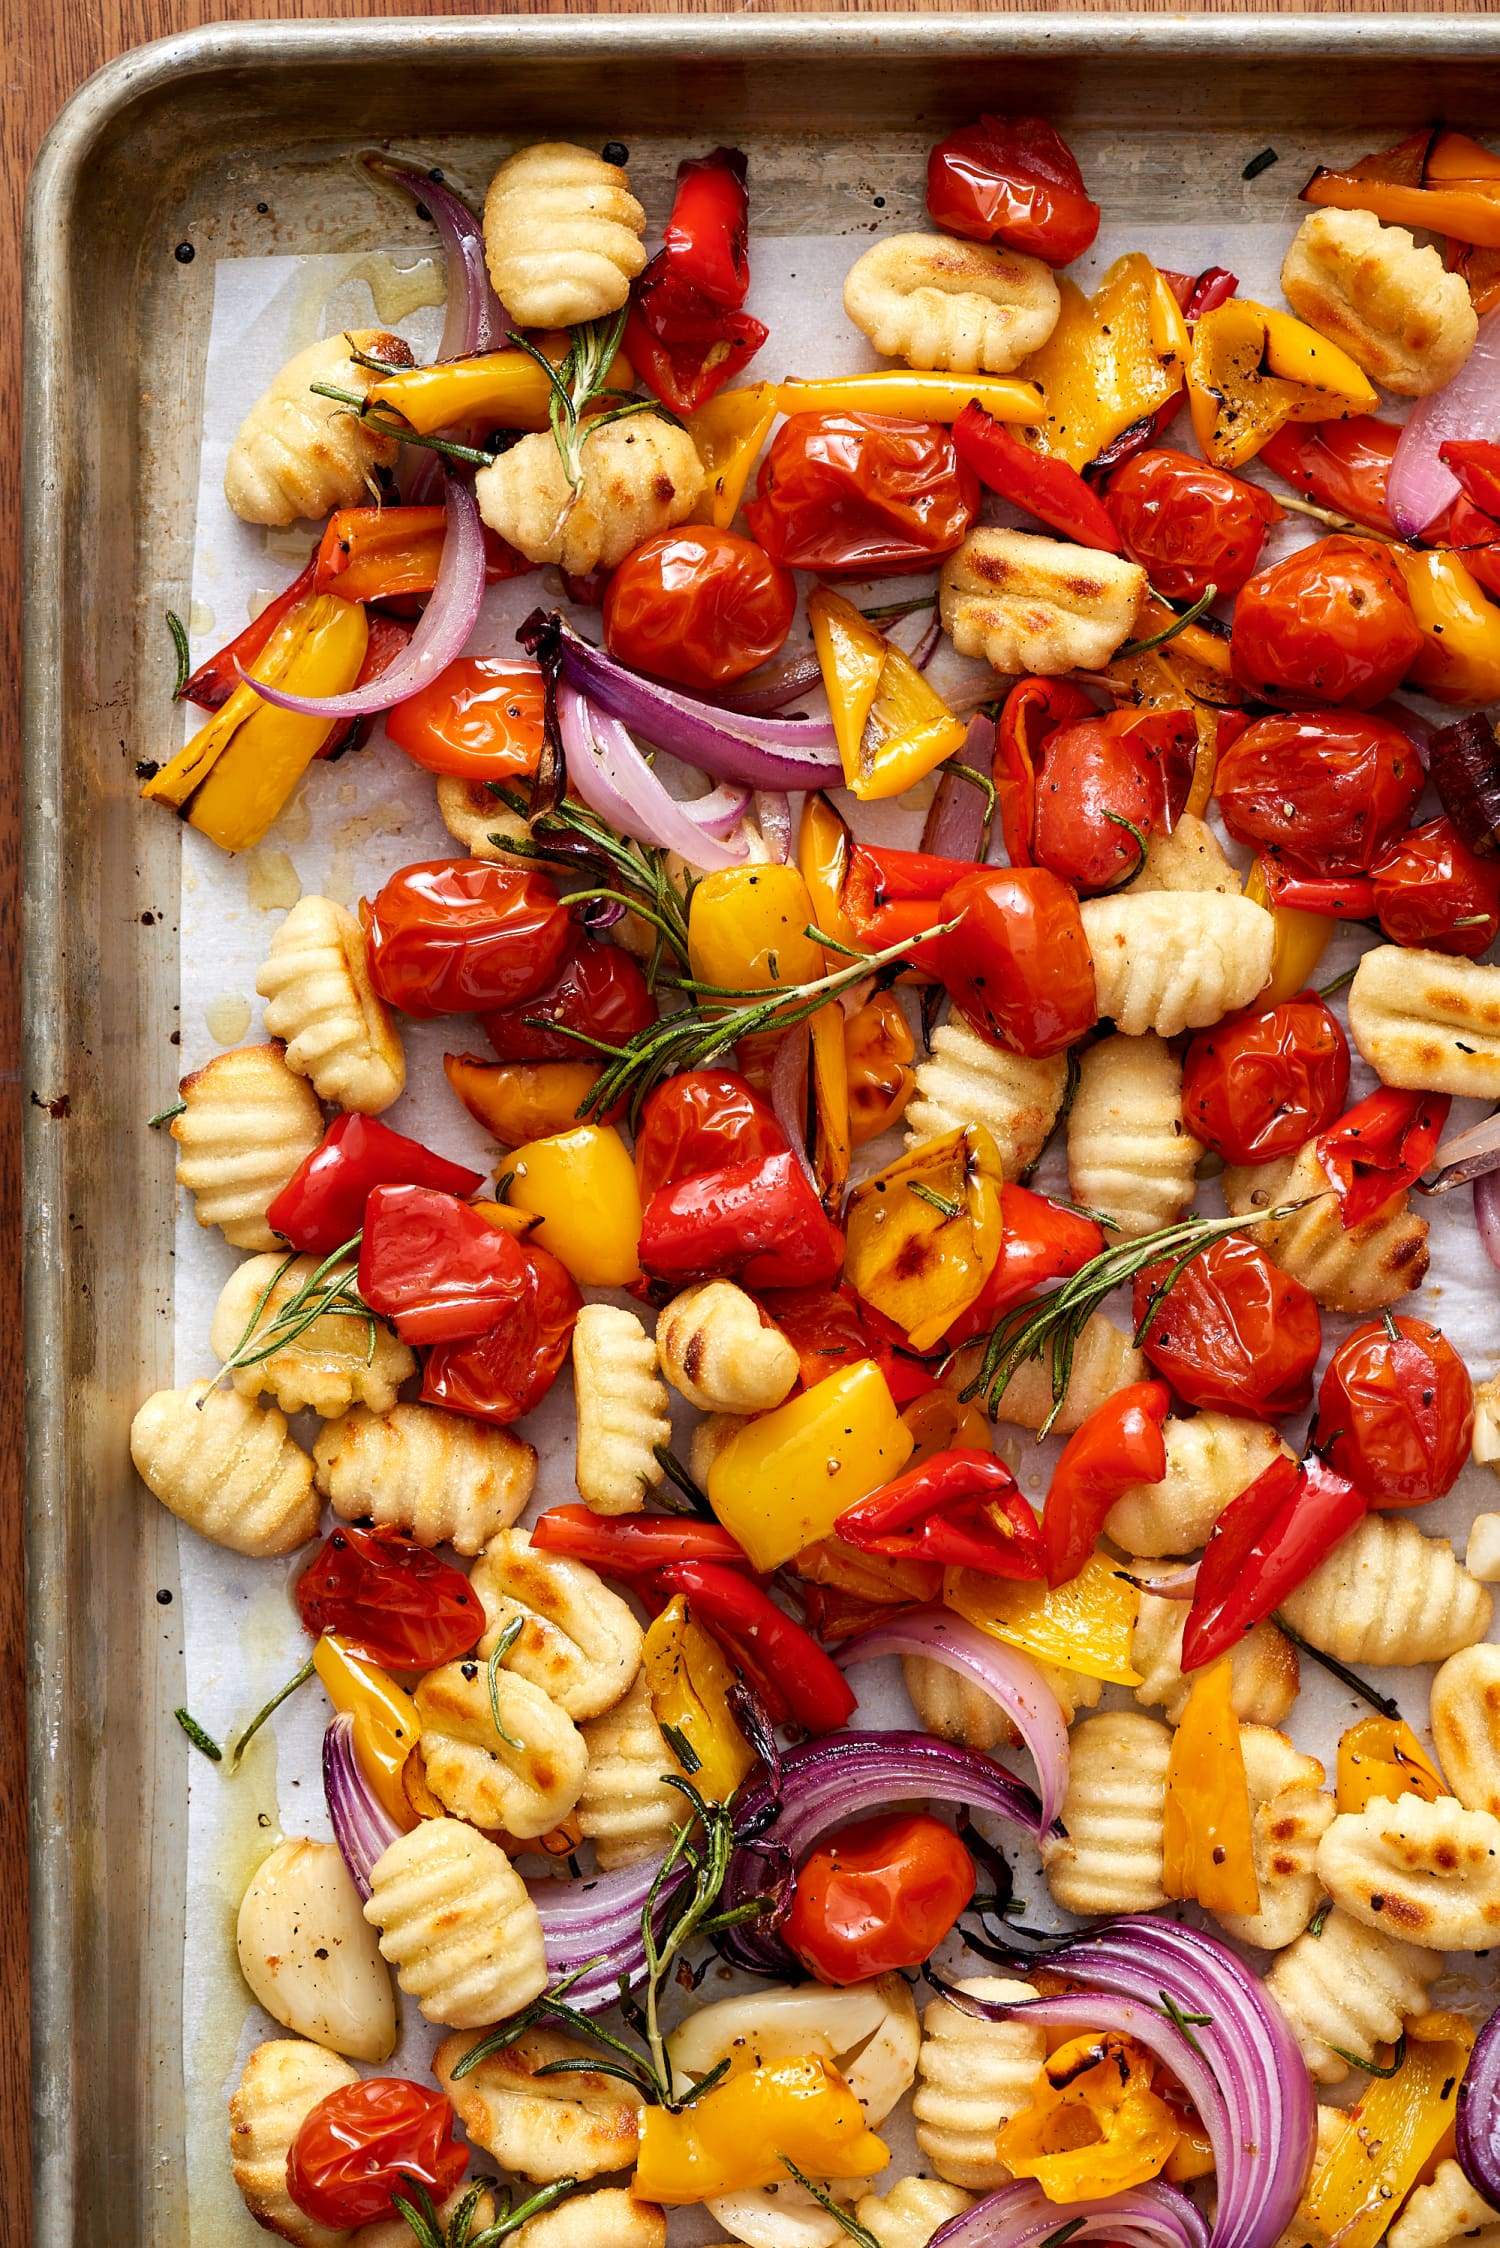 10 Lazy, Veggie-Packed Dinner Ideas